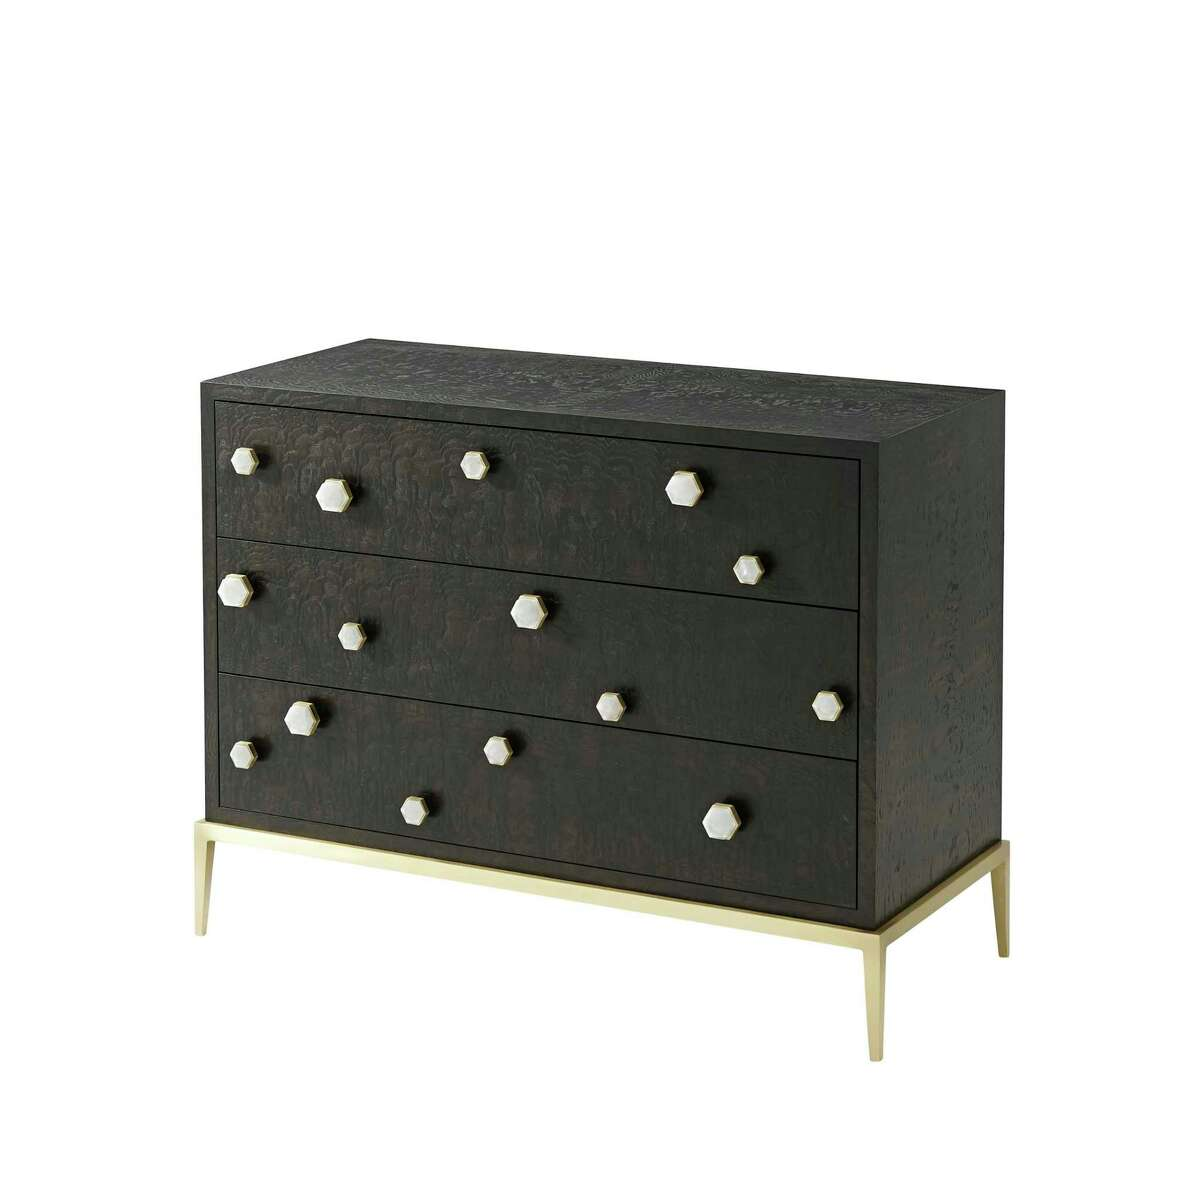 Case goods:Quality craftsmanhip in case goods like this Apollo chest by Ashley Childers for Emporium Home was cited by designers as a standout at High Point's spring furniture market.